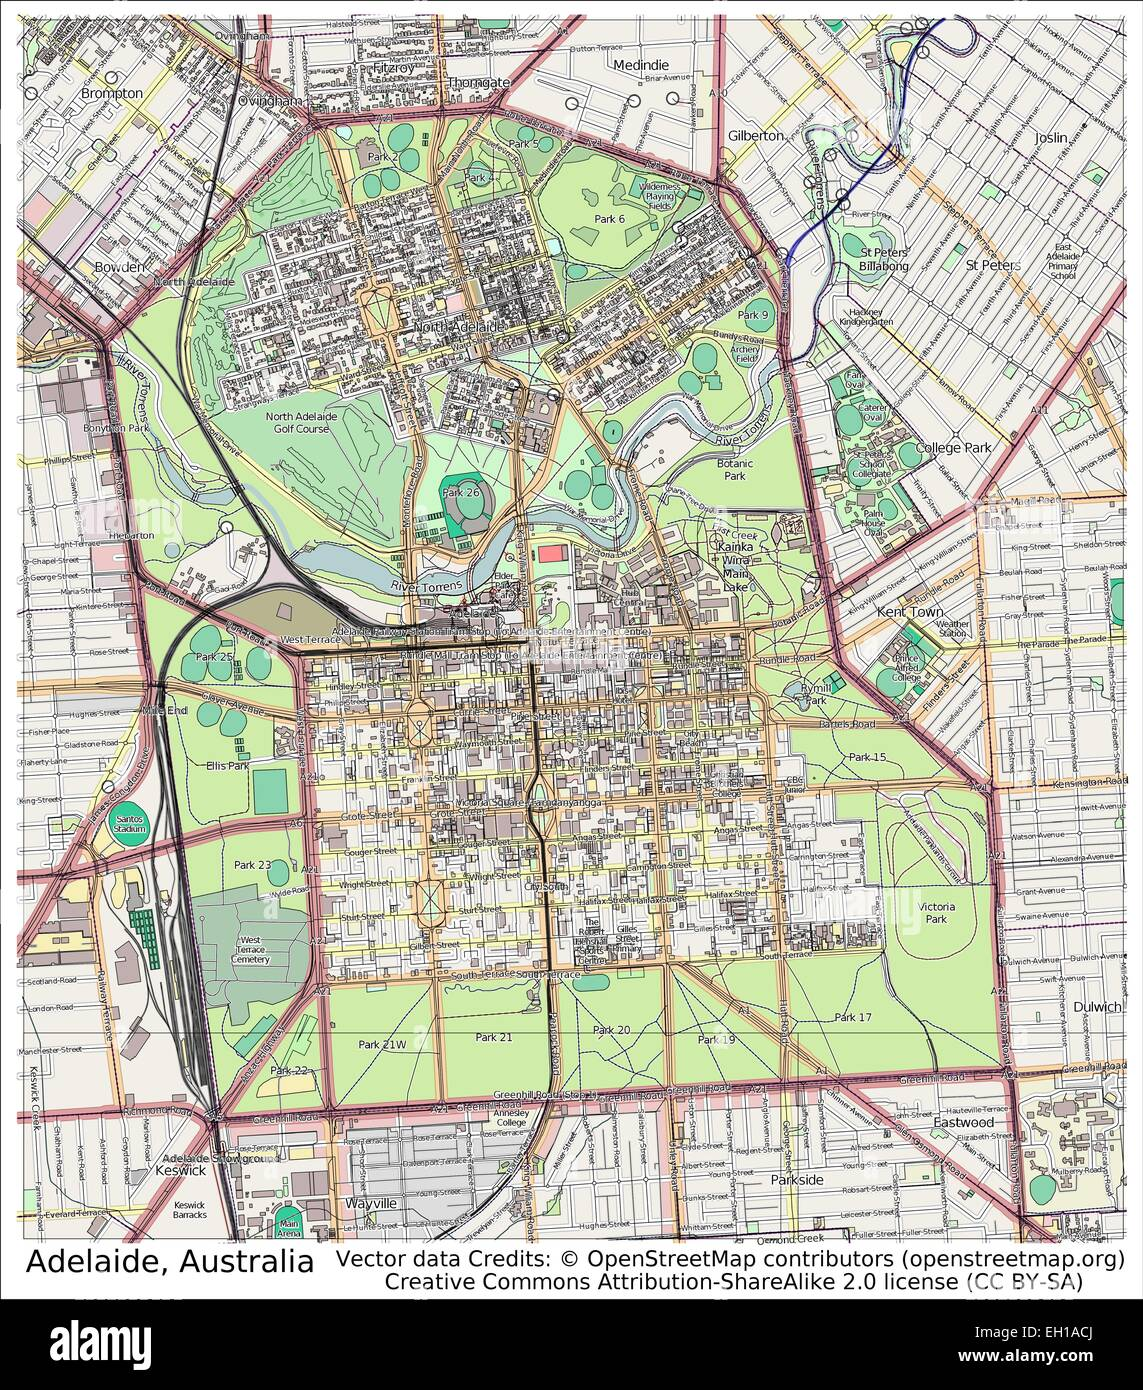 adelaide australia city map